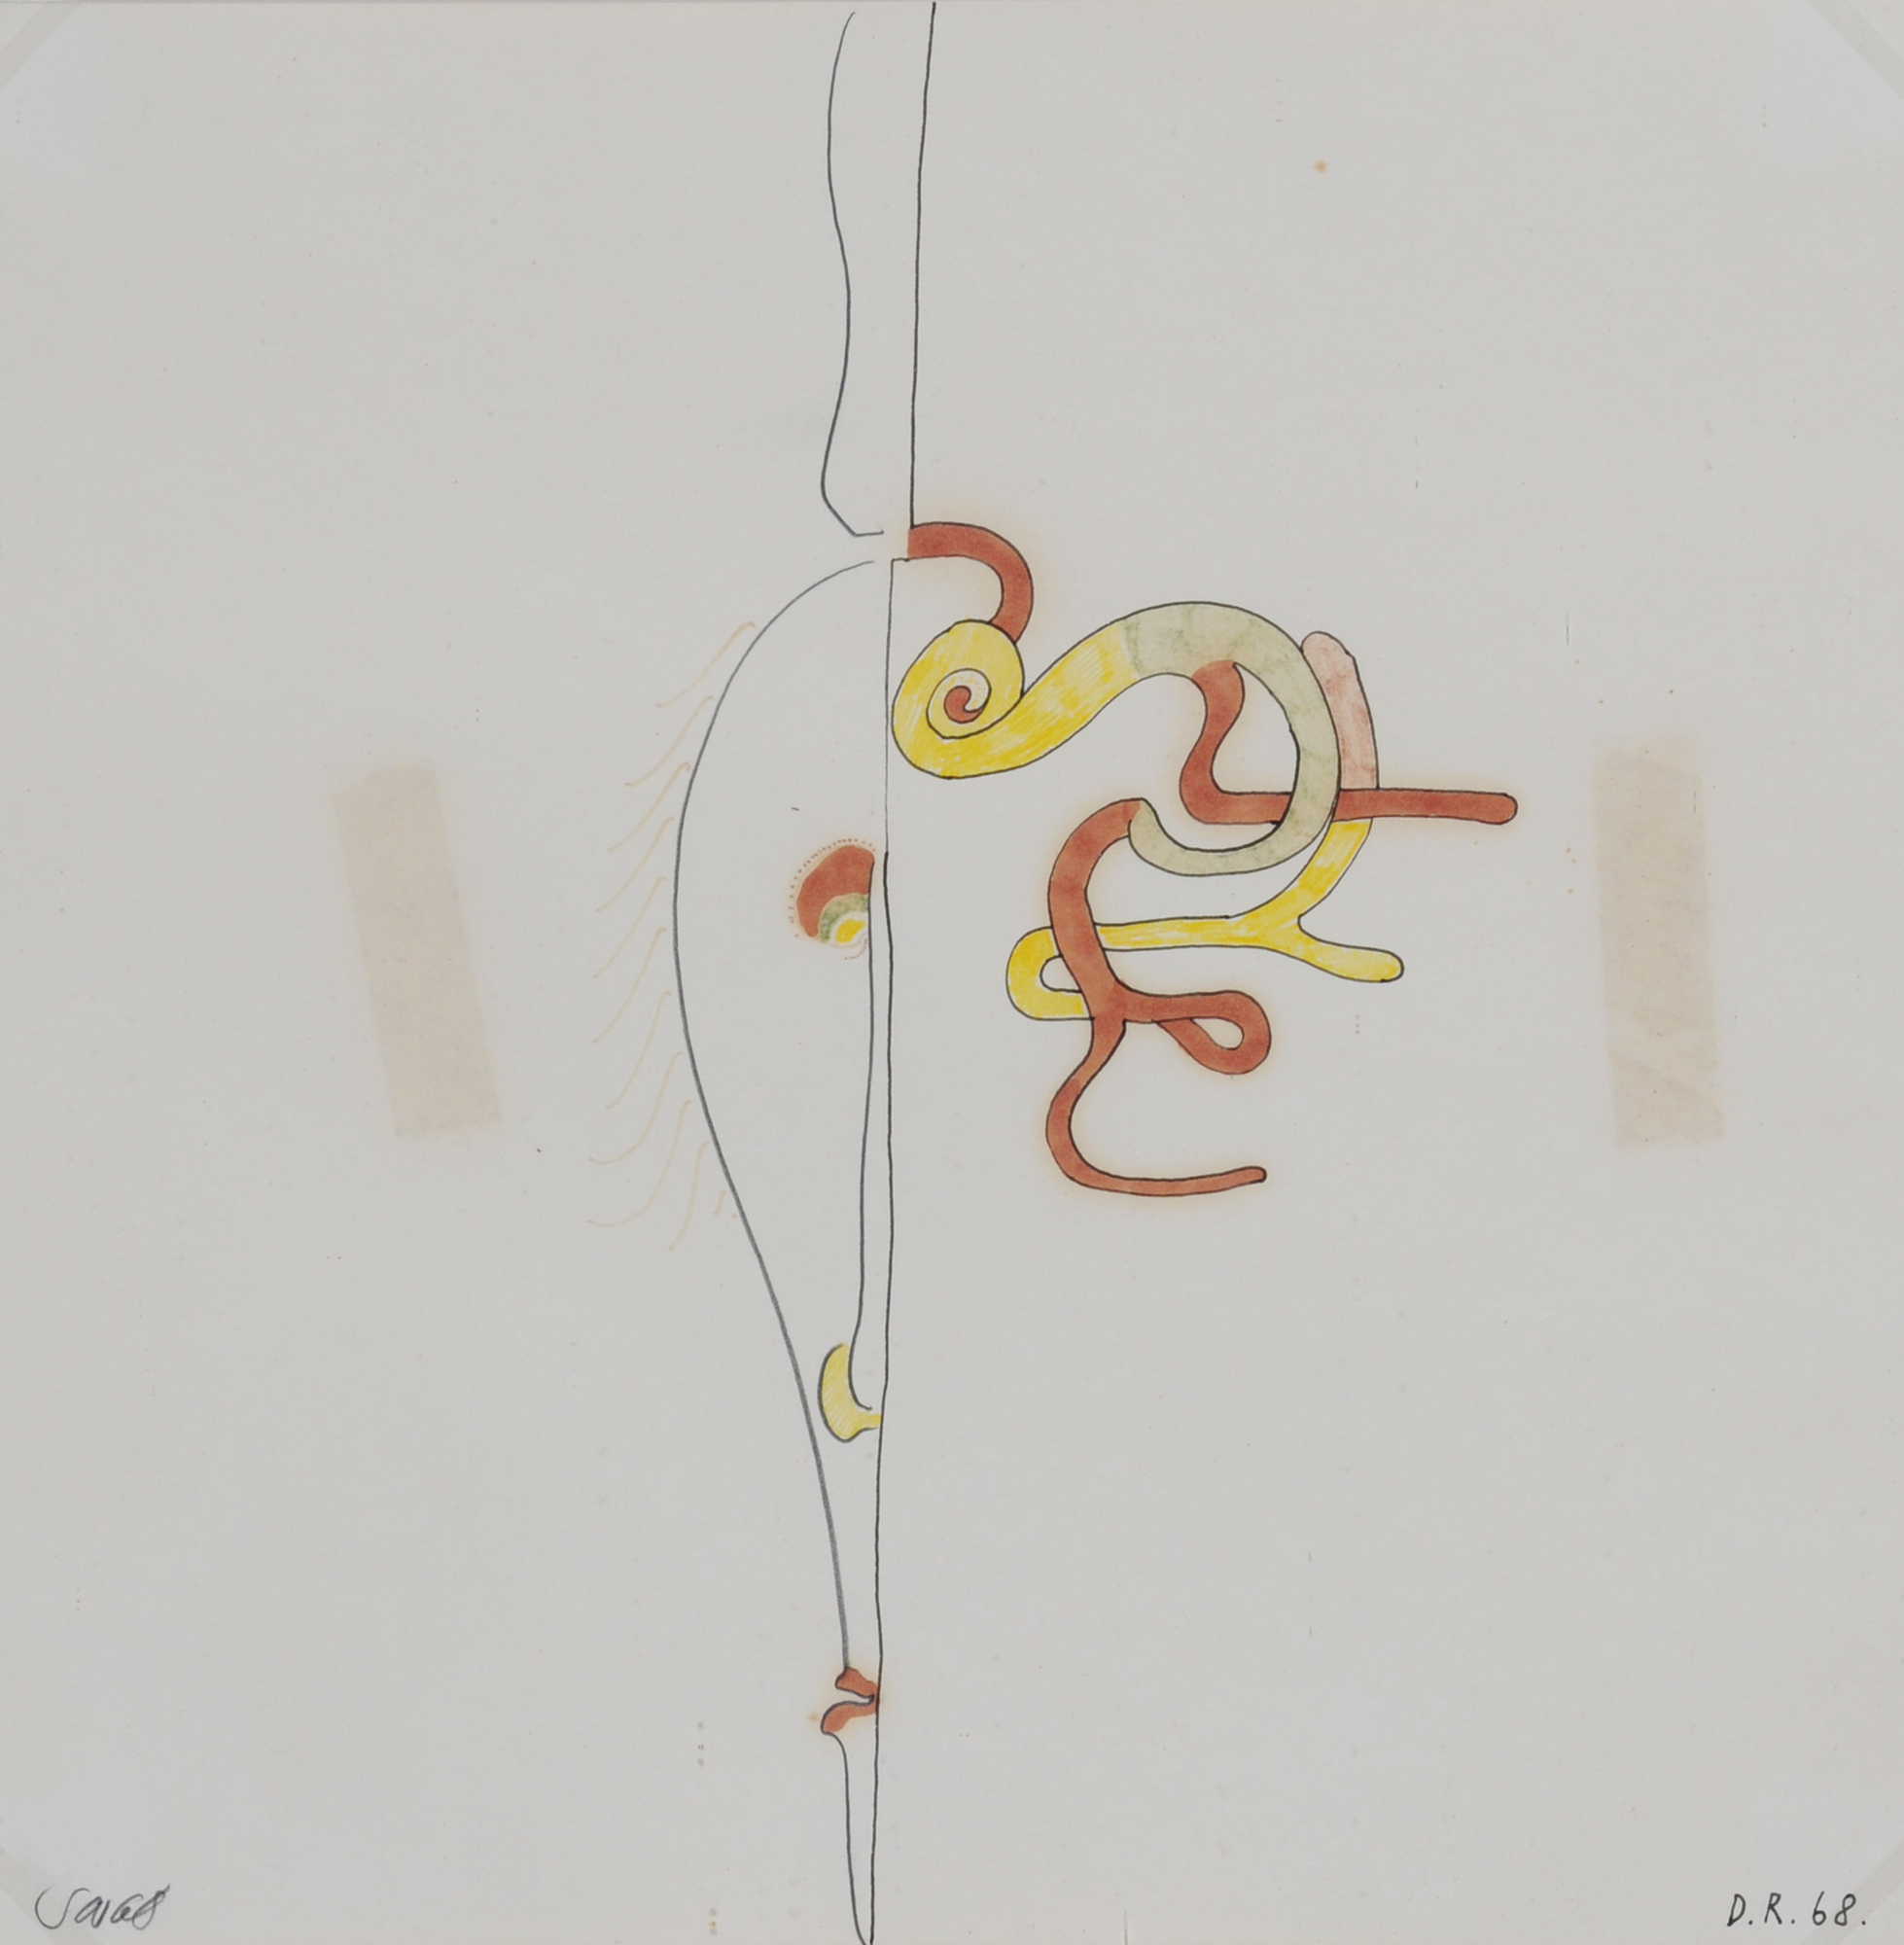 Roth Dieter, Untitled